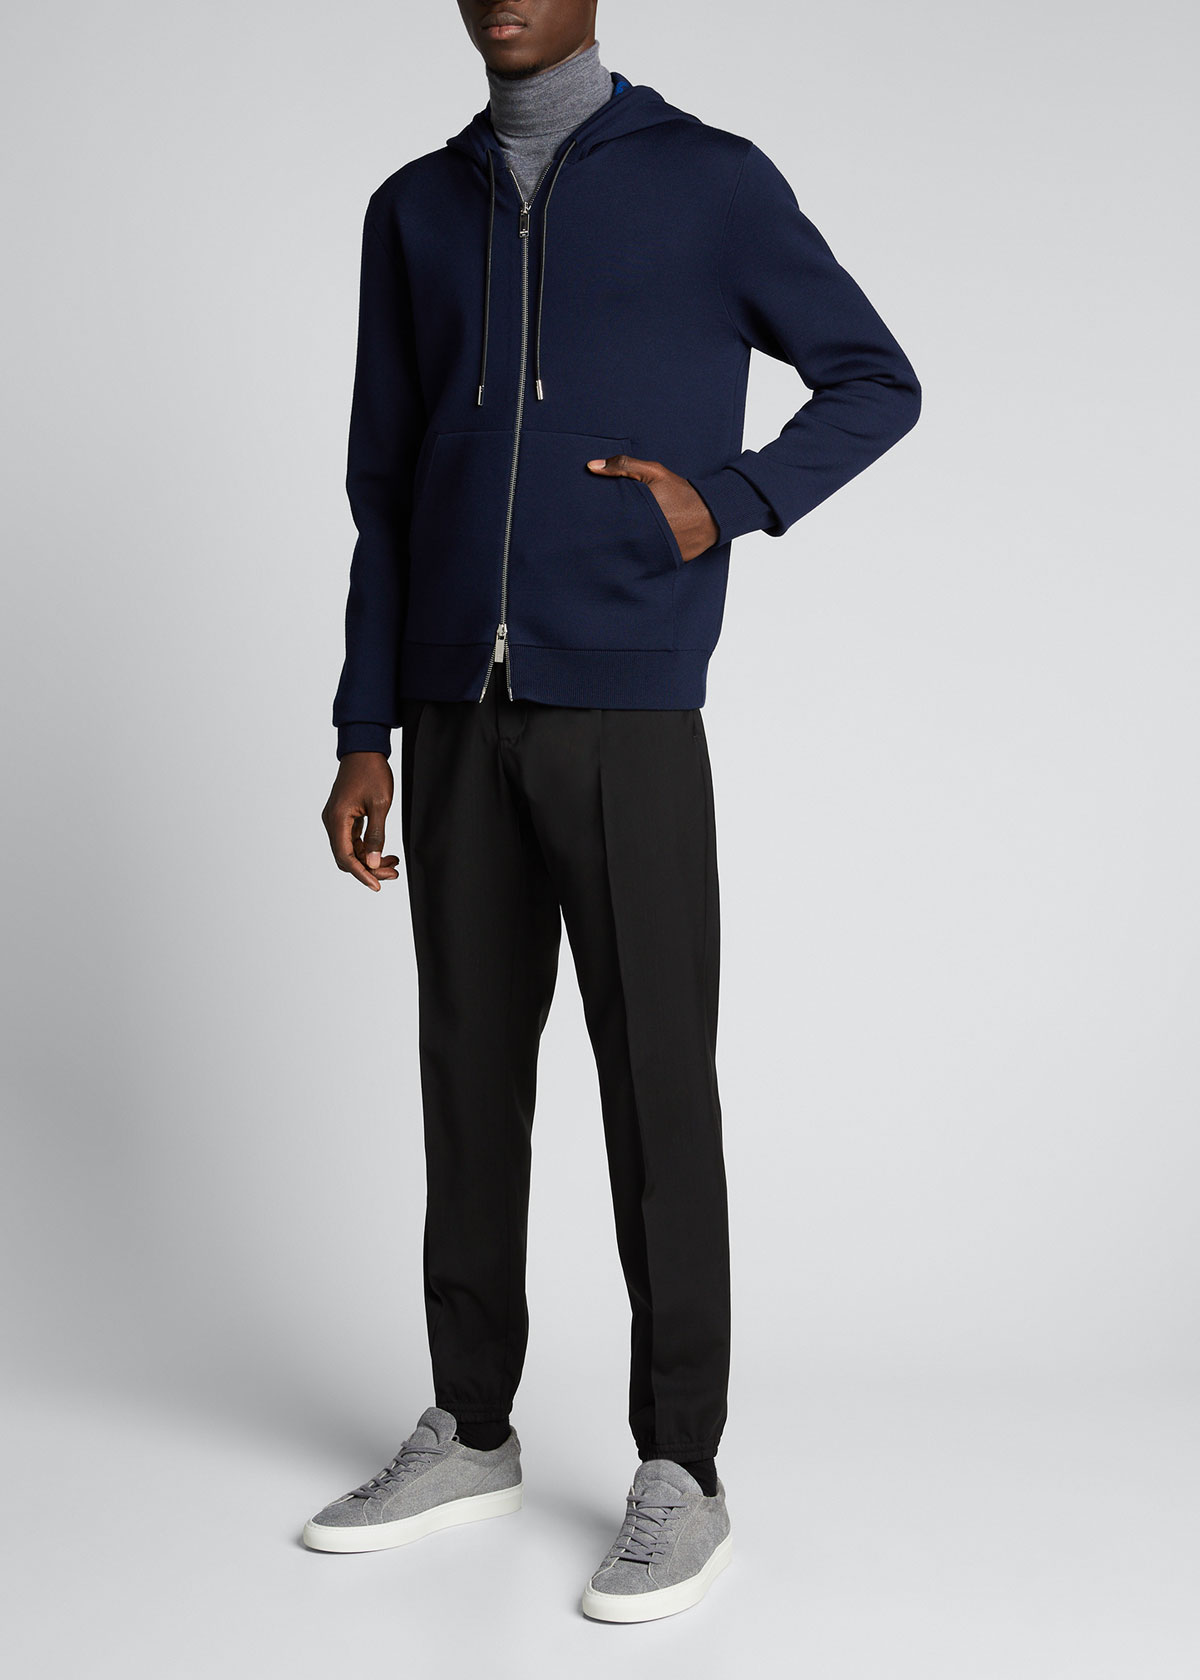 Berluti MEN'S SOLID KNIT FULL-ZIP HOODIE